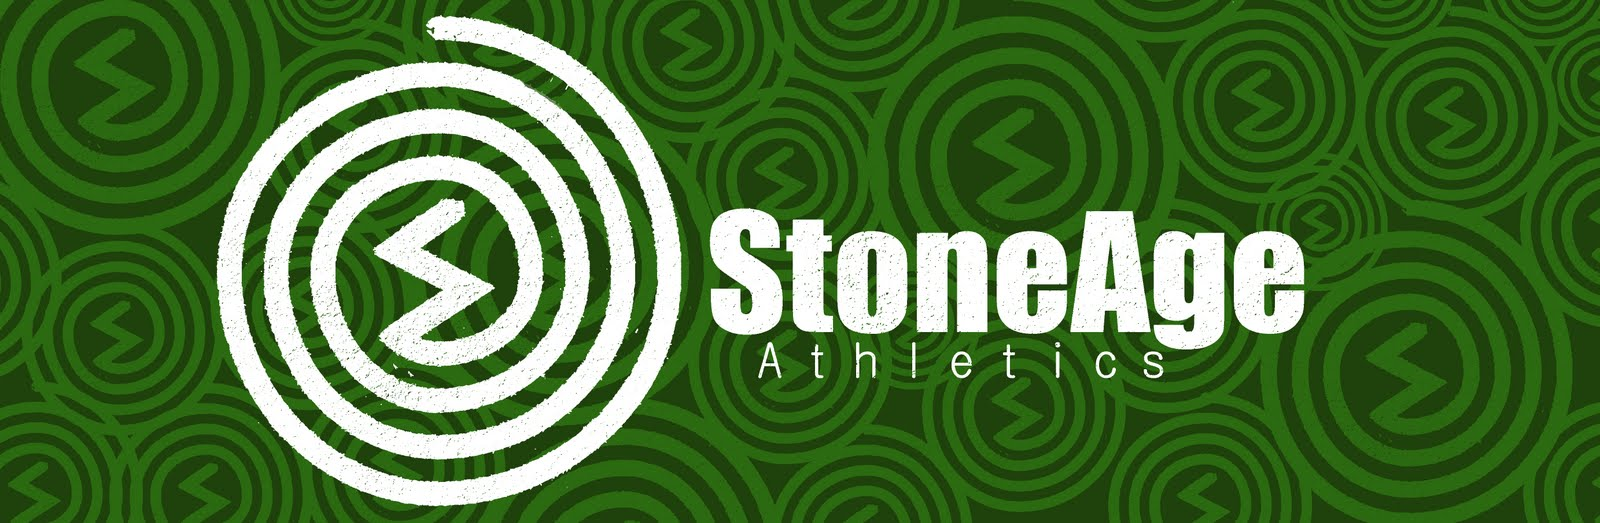 StoneAge Athletics